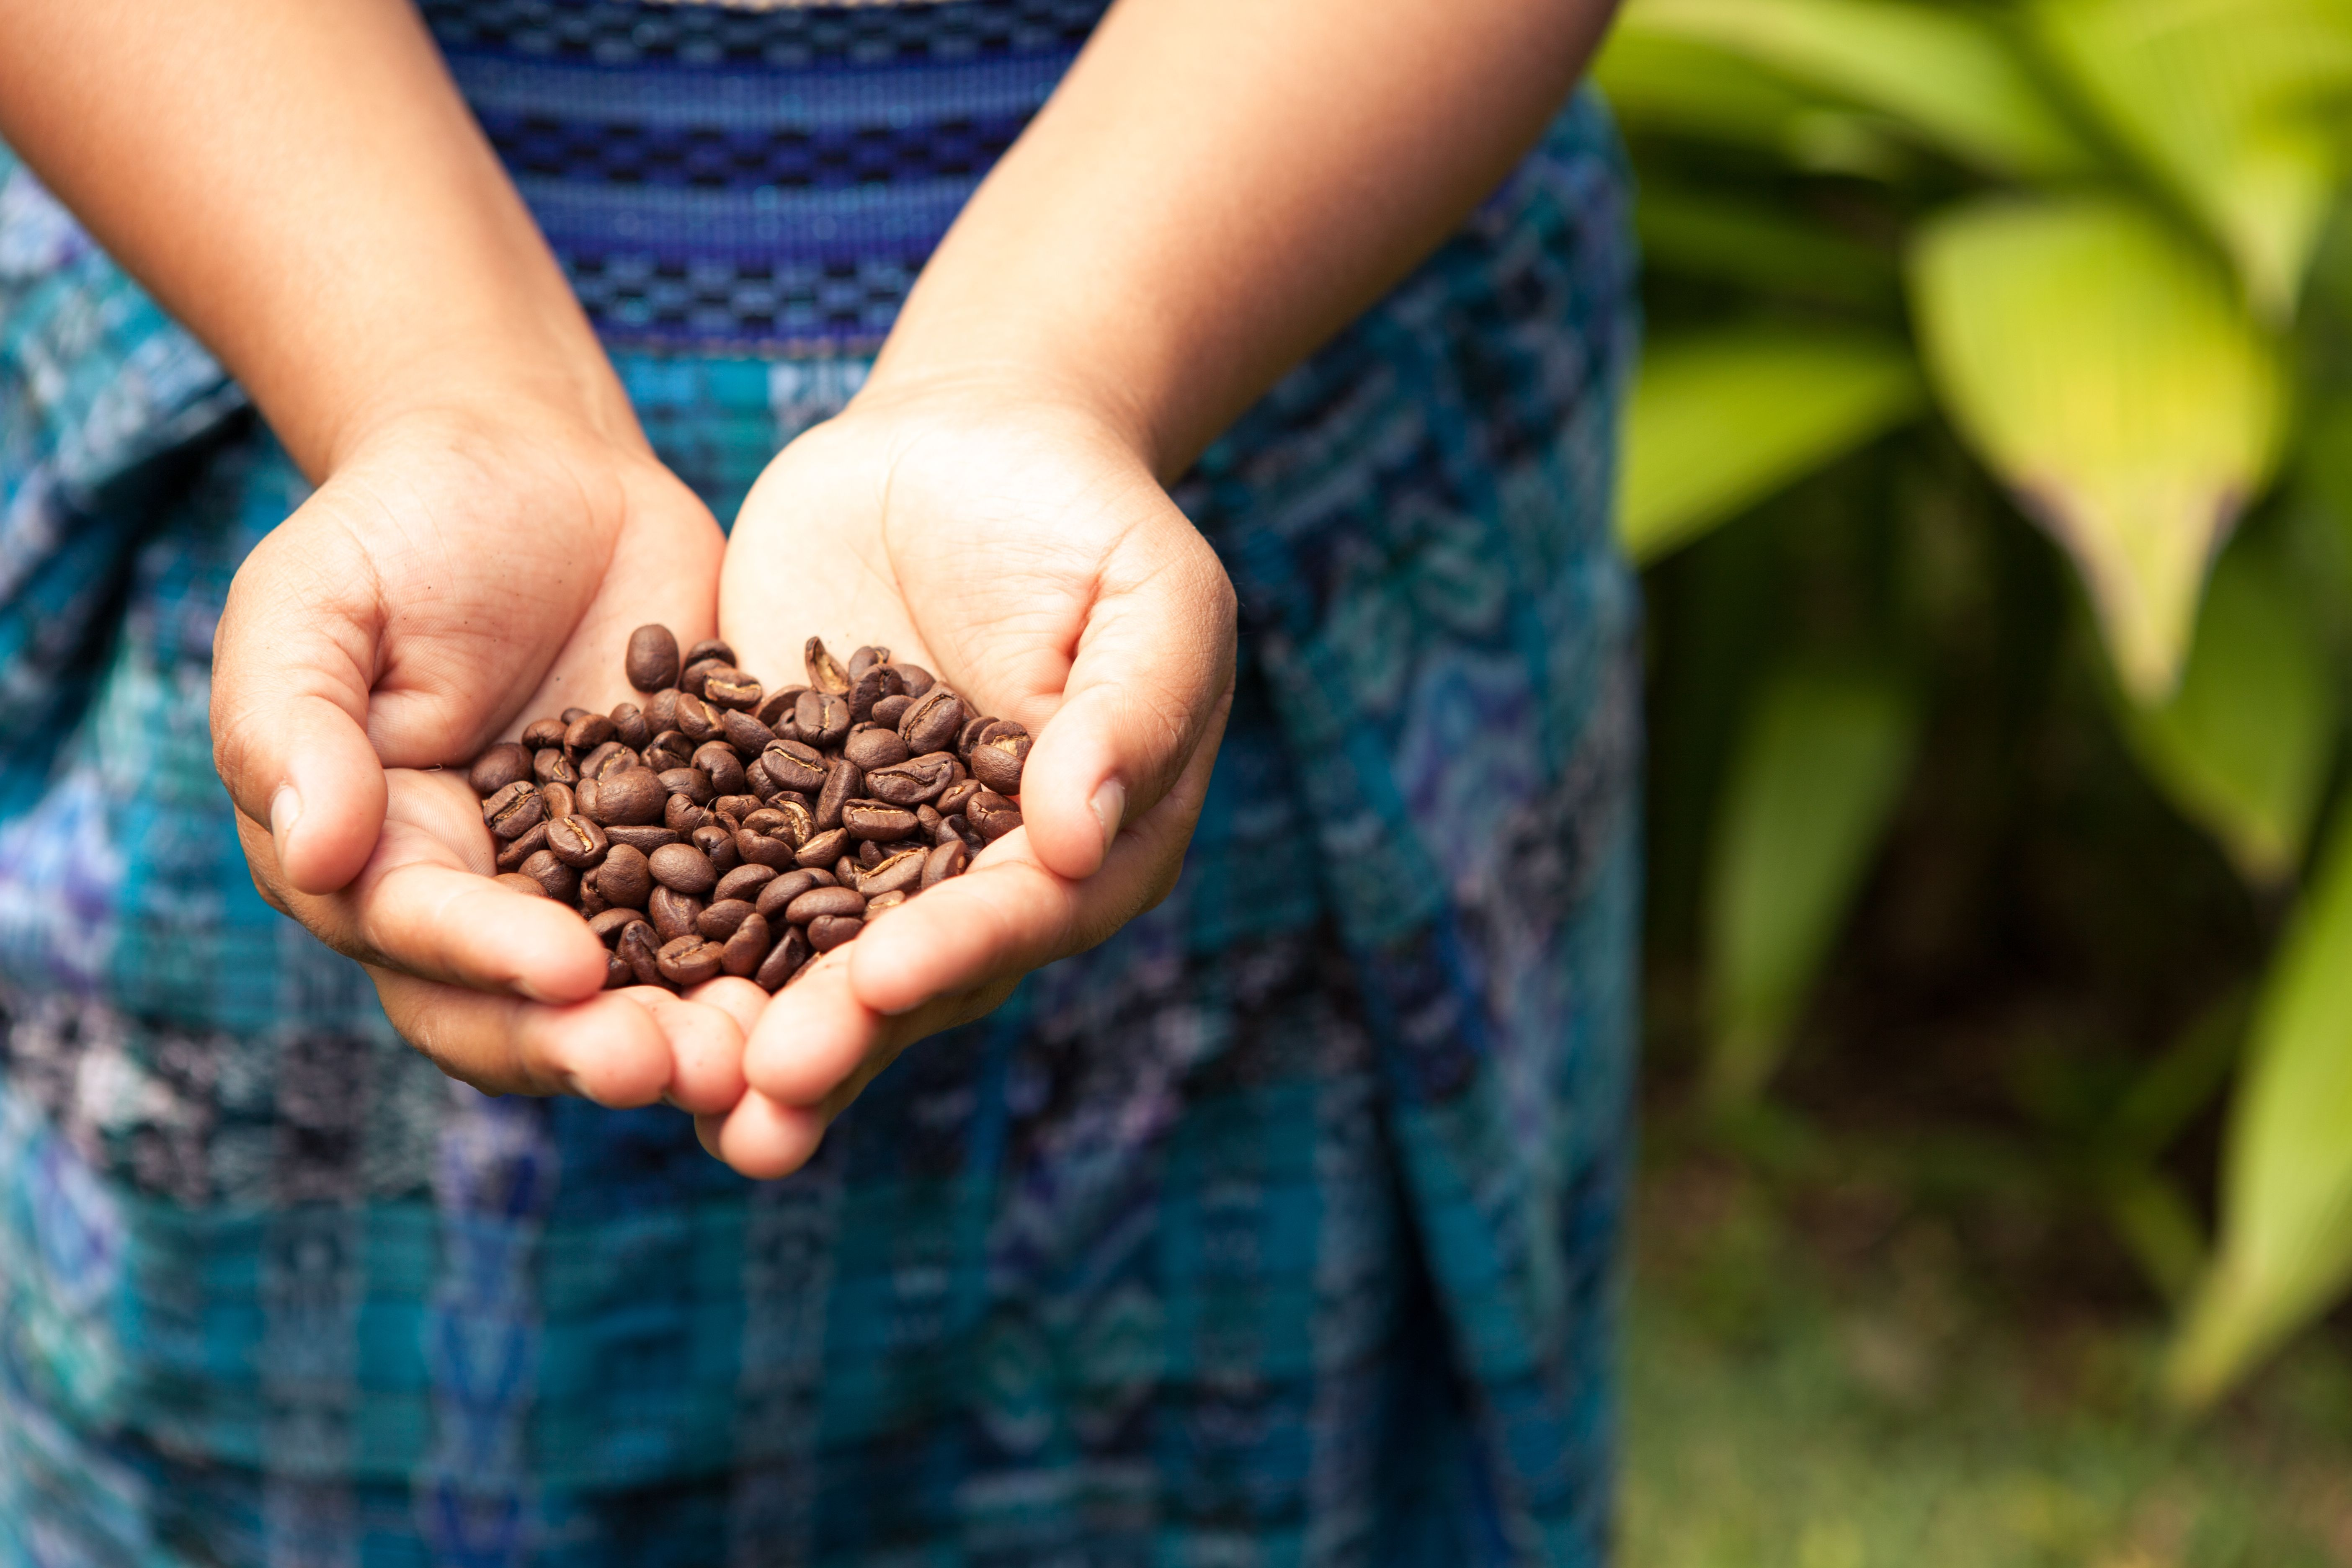 Costa Rica S Coffee Story Began As Far Back As 1798 It Was Not Very Hard To Cultivate The Plants In The Count Organic Coffee Beans Coffee Plant Organic Coffee